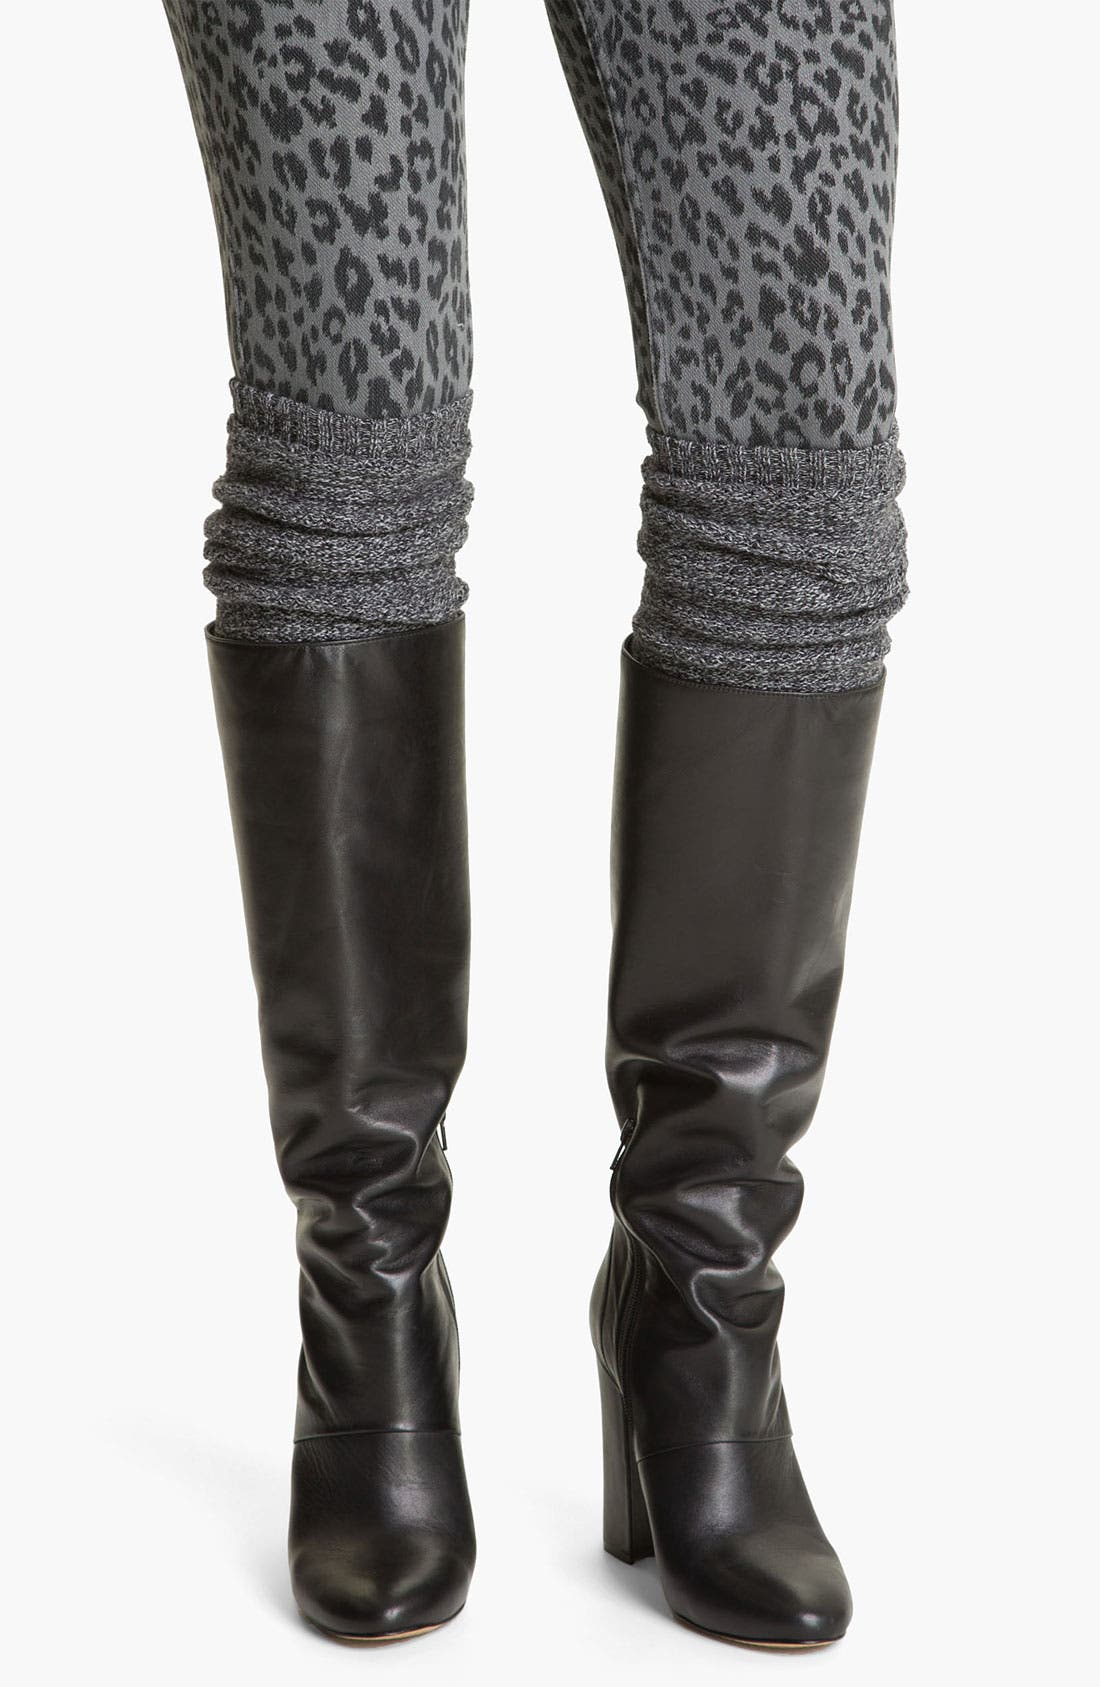 Main Image - Nordstrom Chunky Leg Warmers